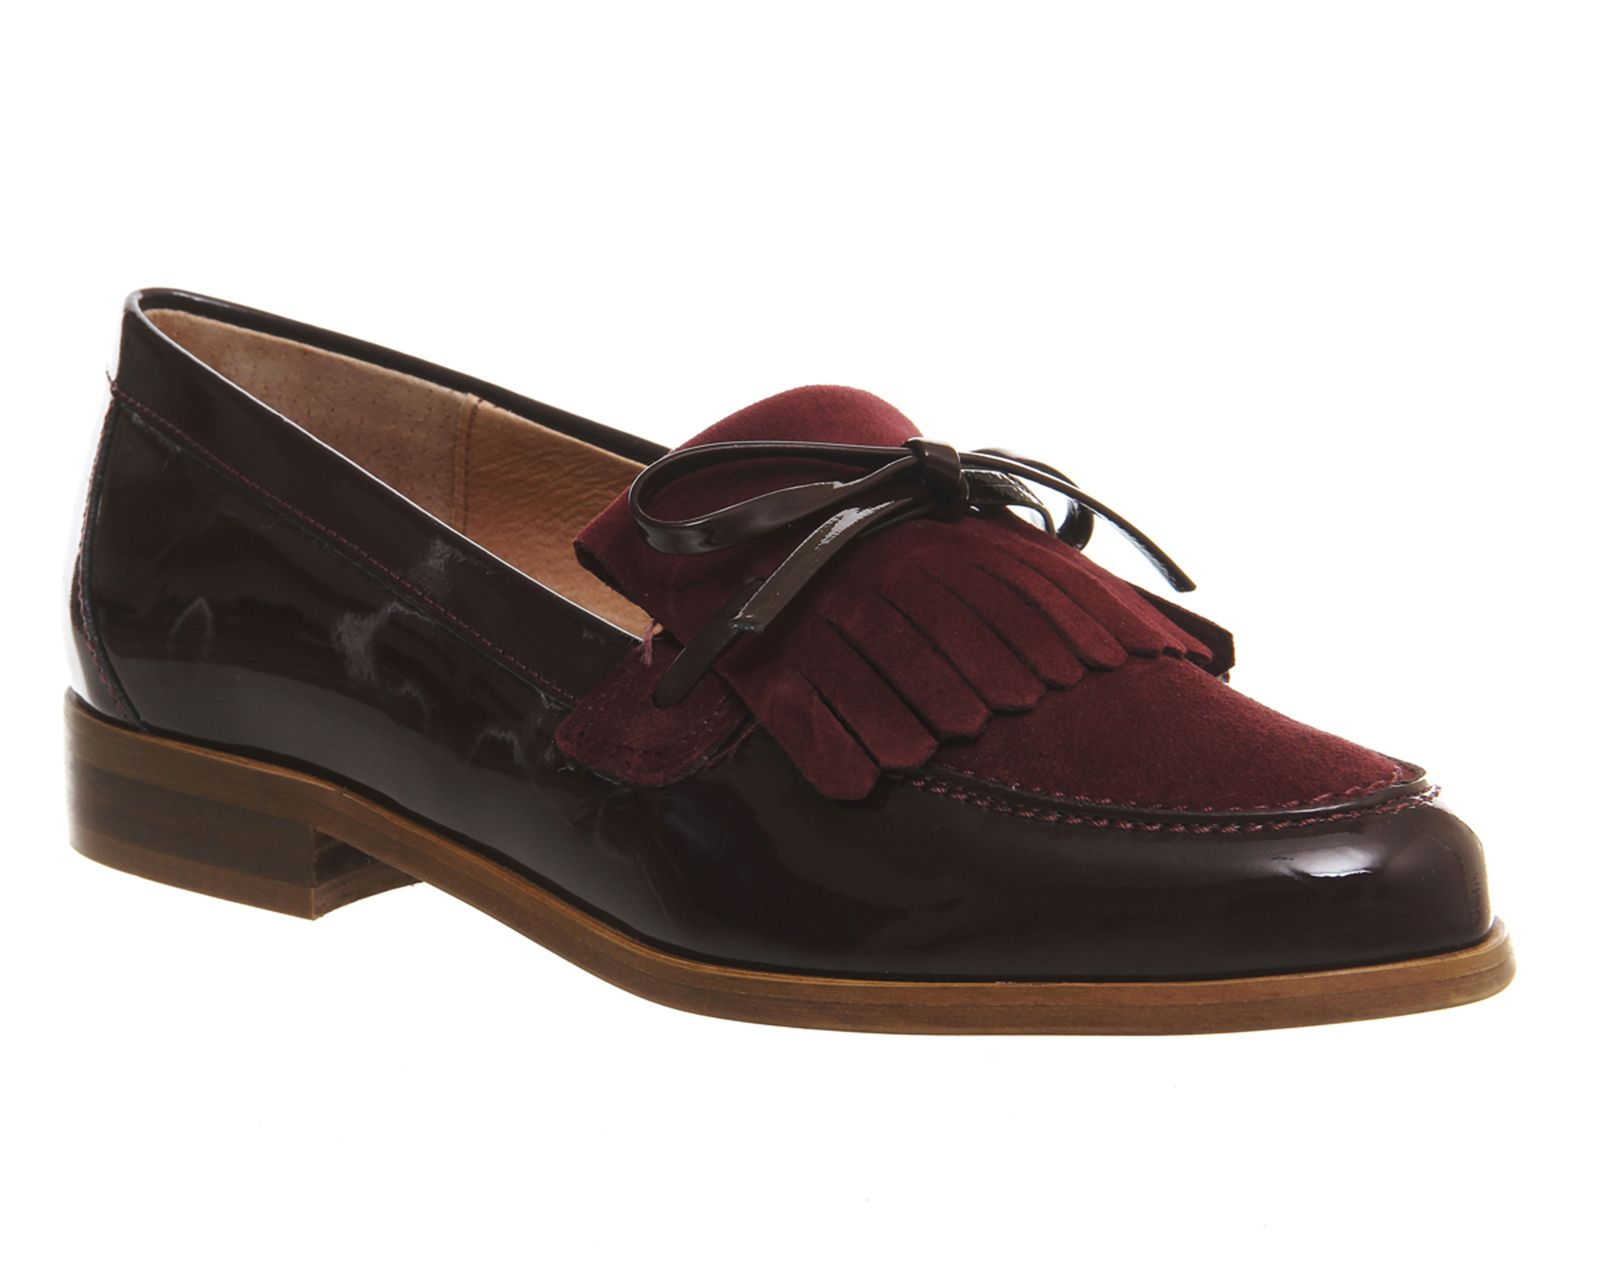 Office Limelight Fringe Loafers Burgundy Patent Suede - Flats